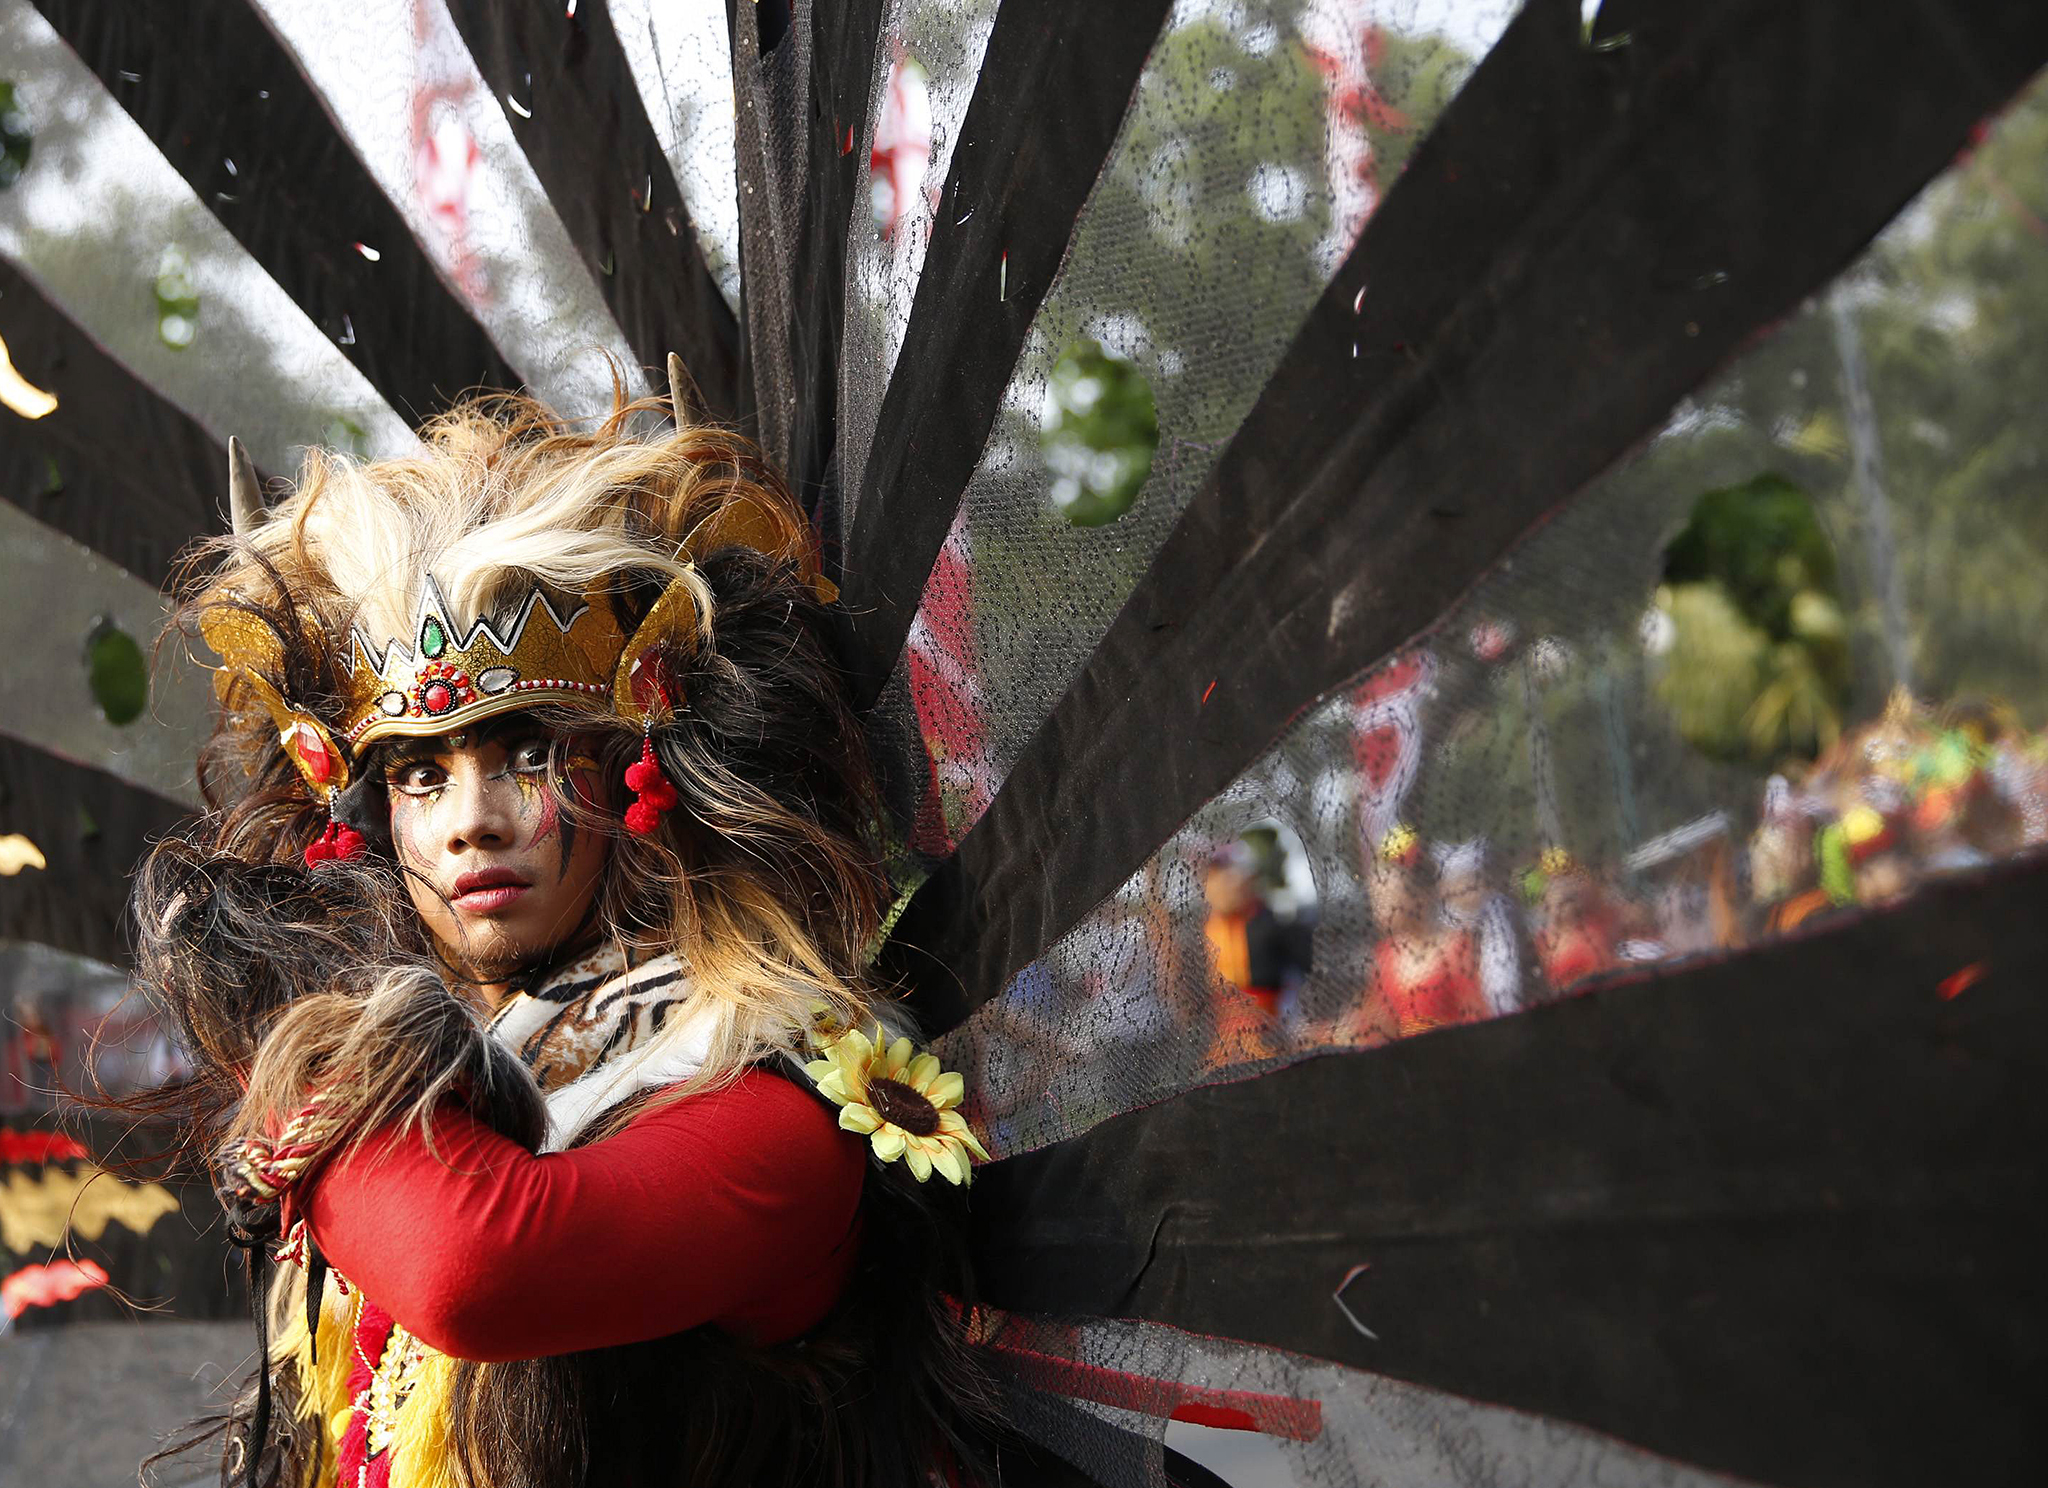 An Indonesian dancer waits for the start of a cultural parade marking the country's 69th Independence Day celebration in Jakarta...An Indonesian dancer waits for the start of a cultural parade marking the country's 69th Independence Day celebration in Jakarta August 18, 2014.